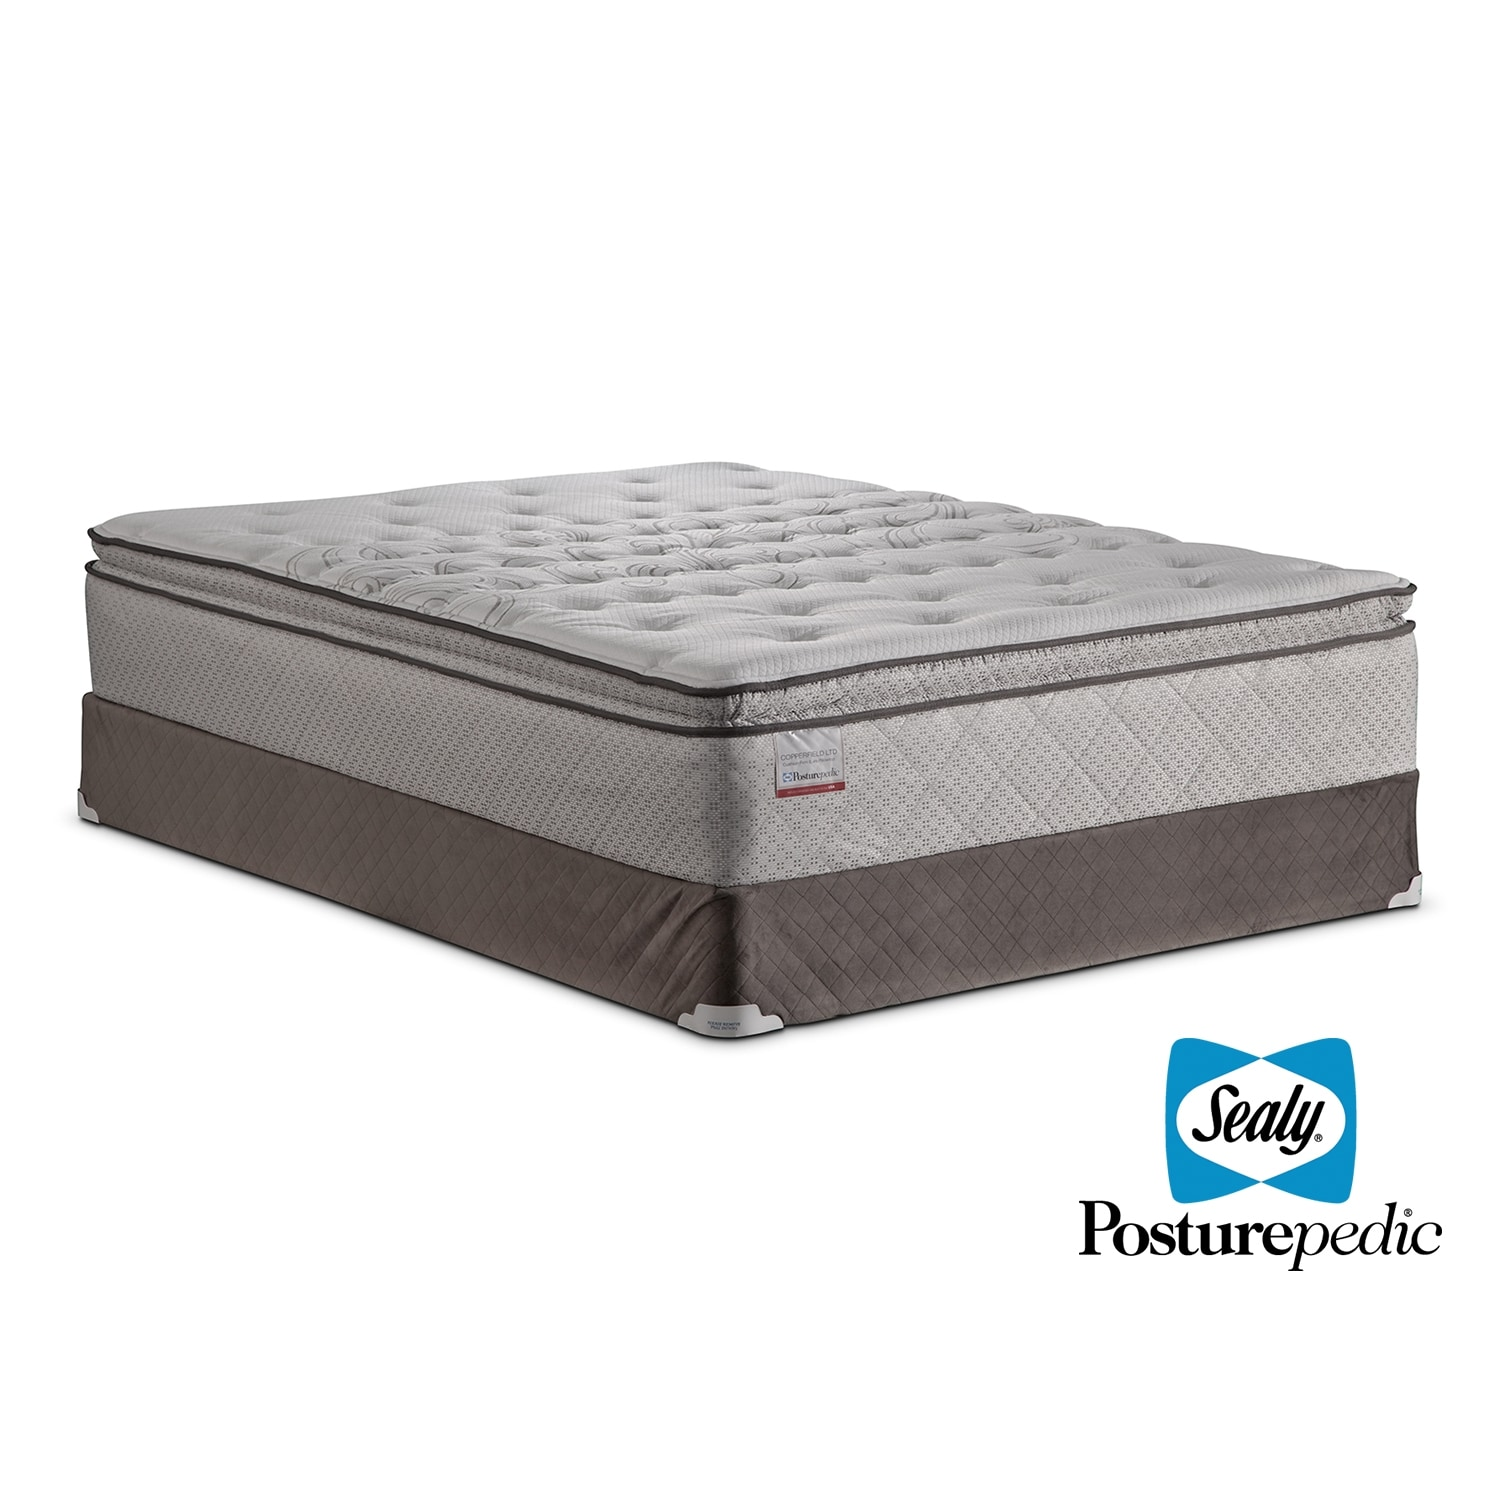 Mattresses and bedding dreams queen mattresssplit foundation set bed mattress sale Mattress set sale queen